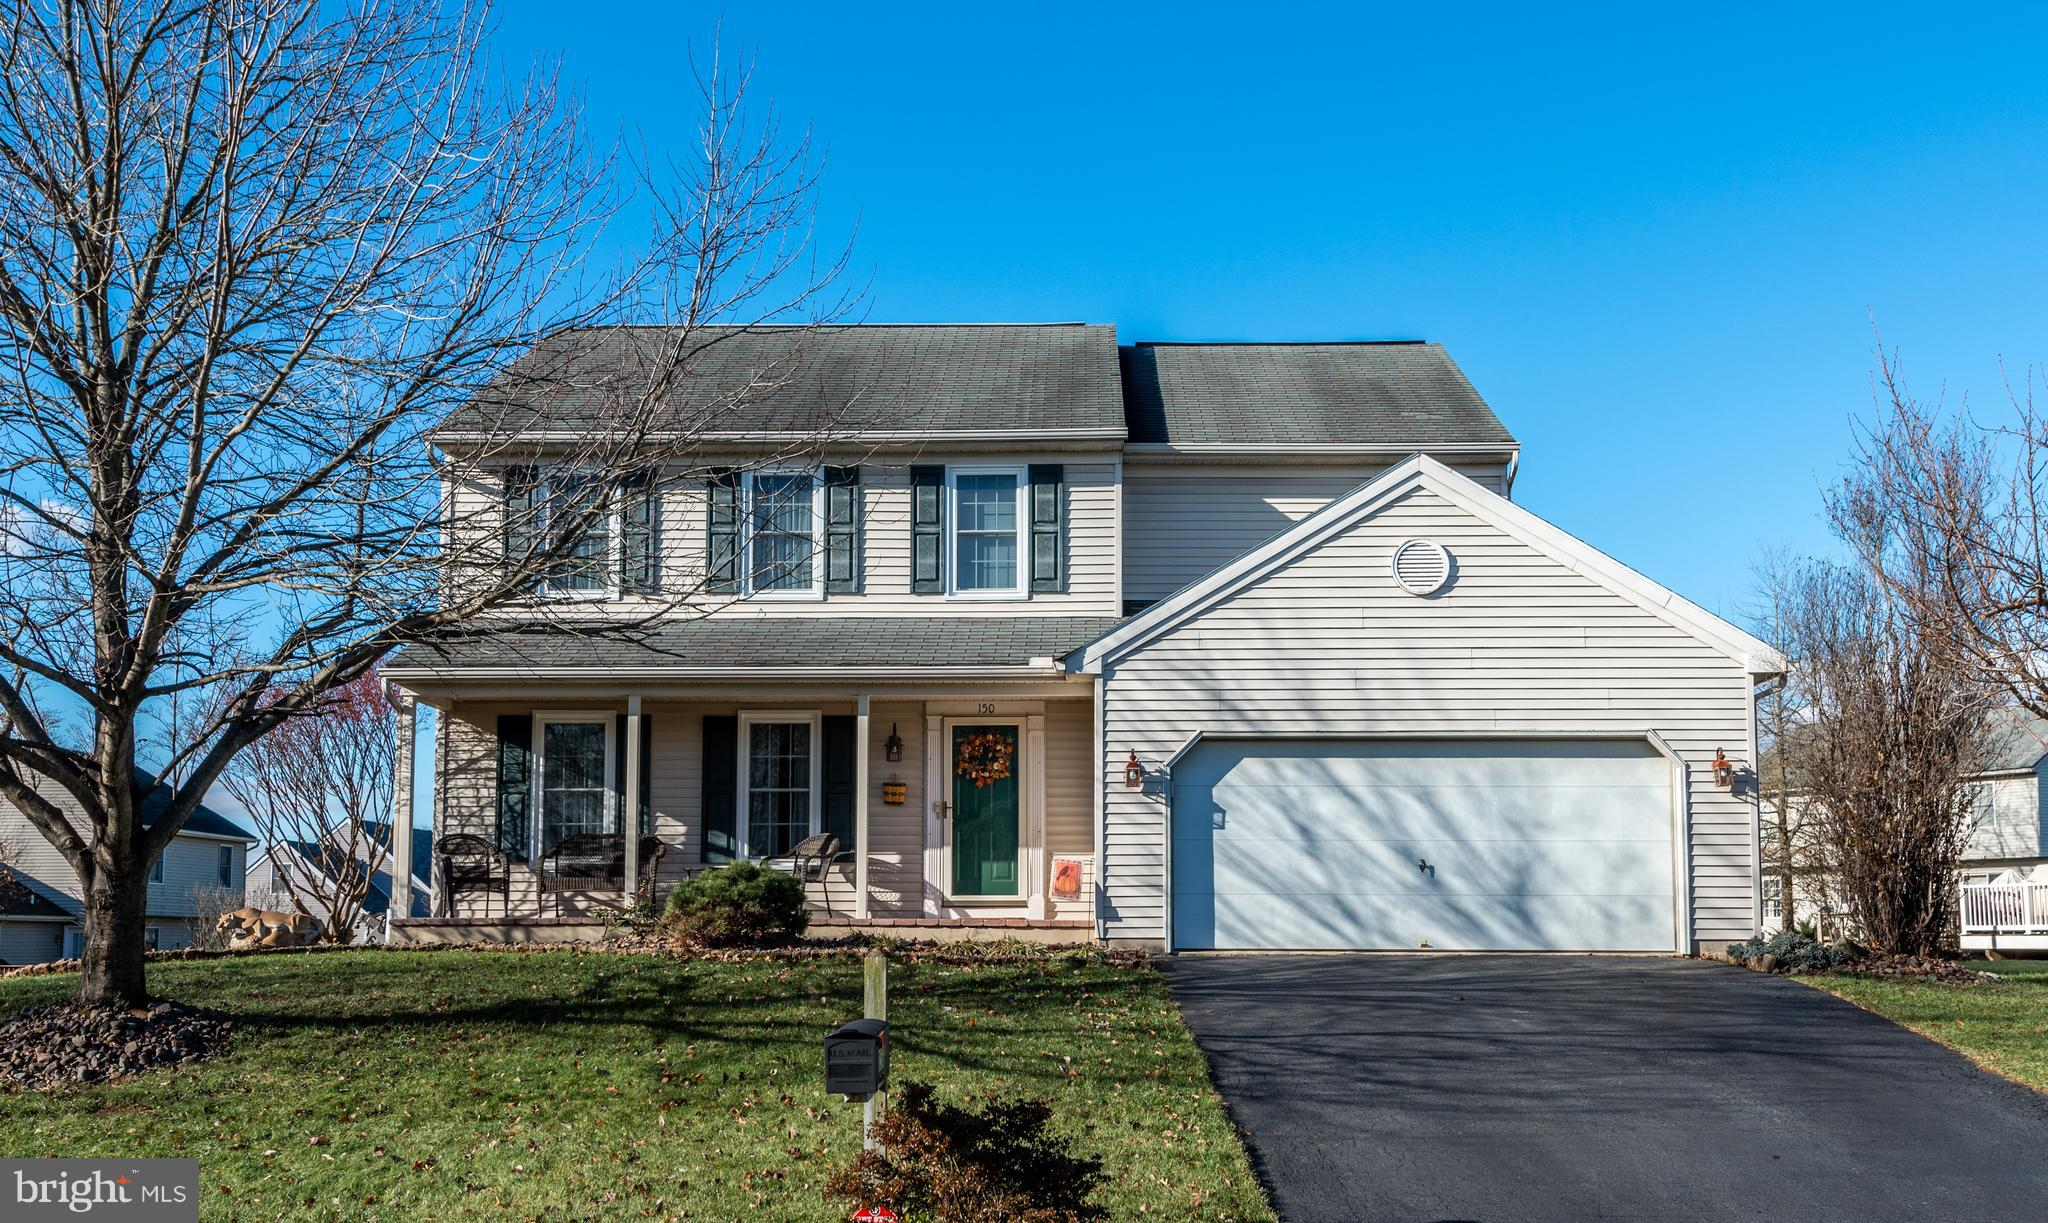 150 VILLAGE SPRING LANE, REINHOLDS, PA 17569